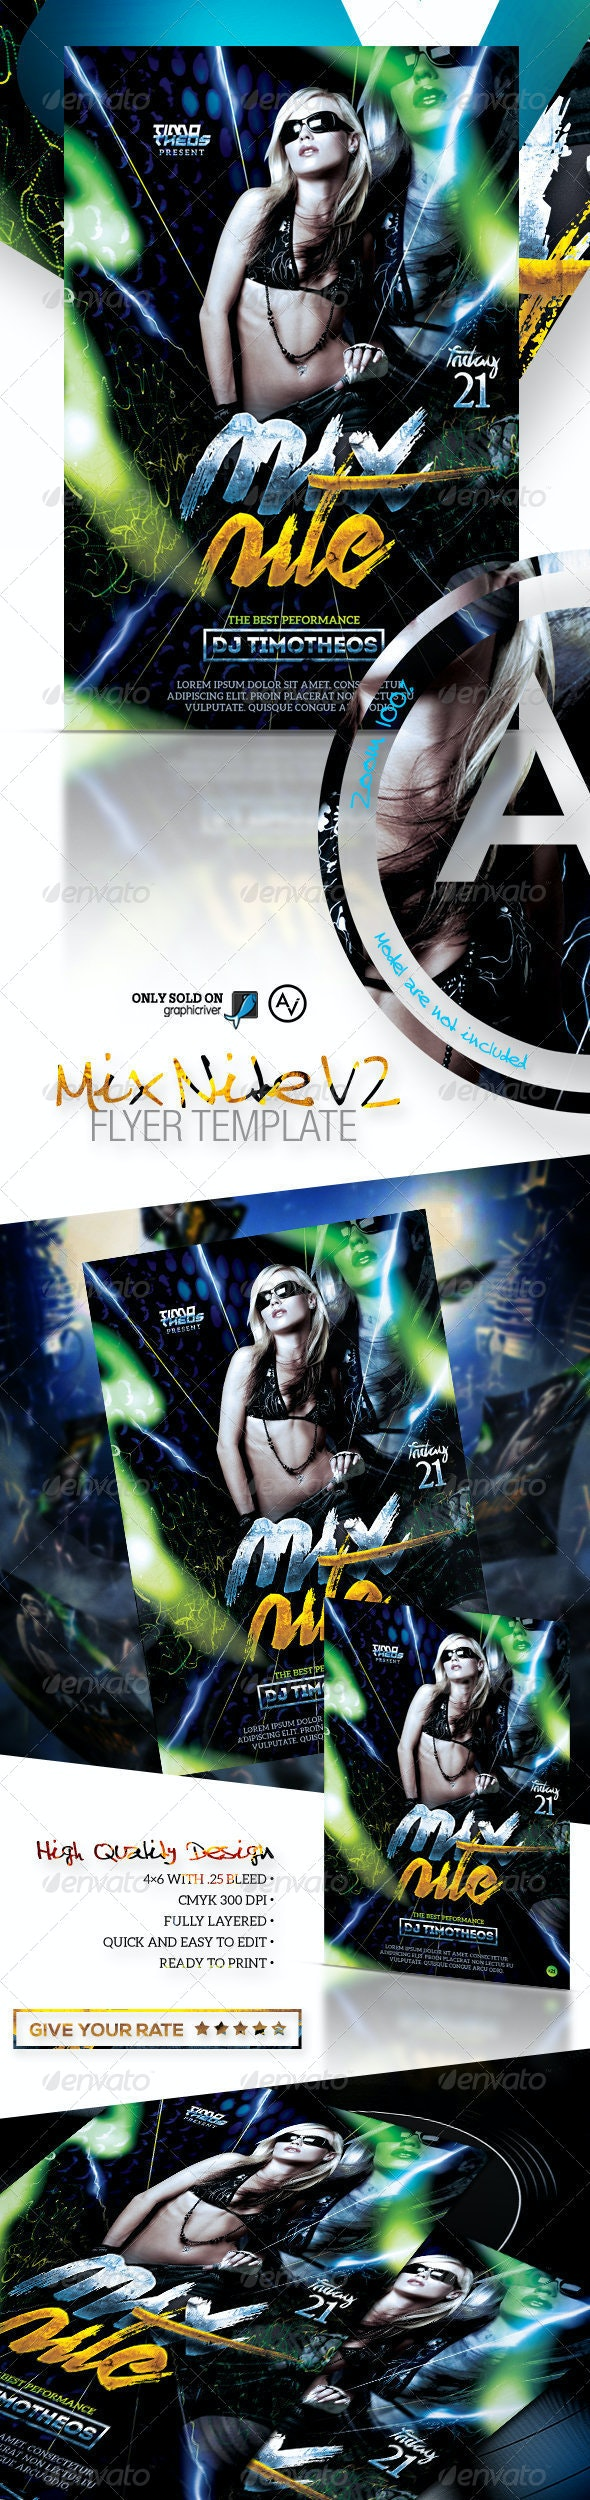 Mix Nite Flyer Template V2 - Clubs & Parties Events